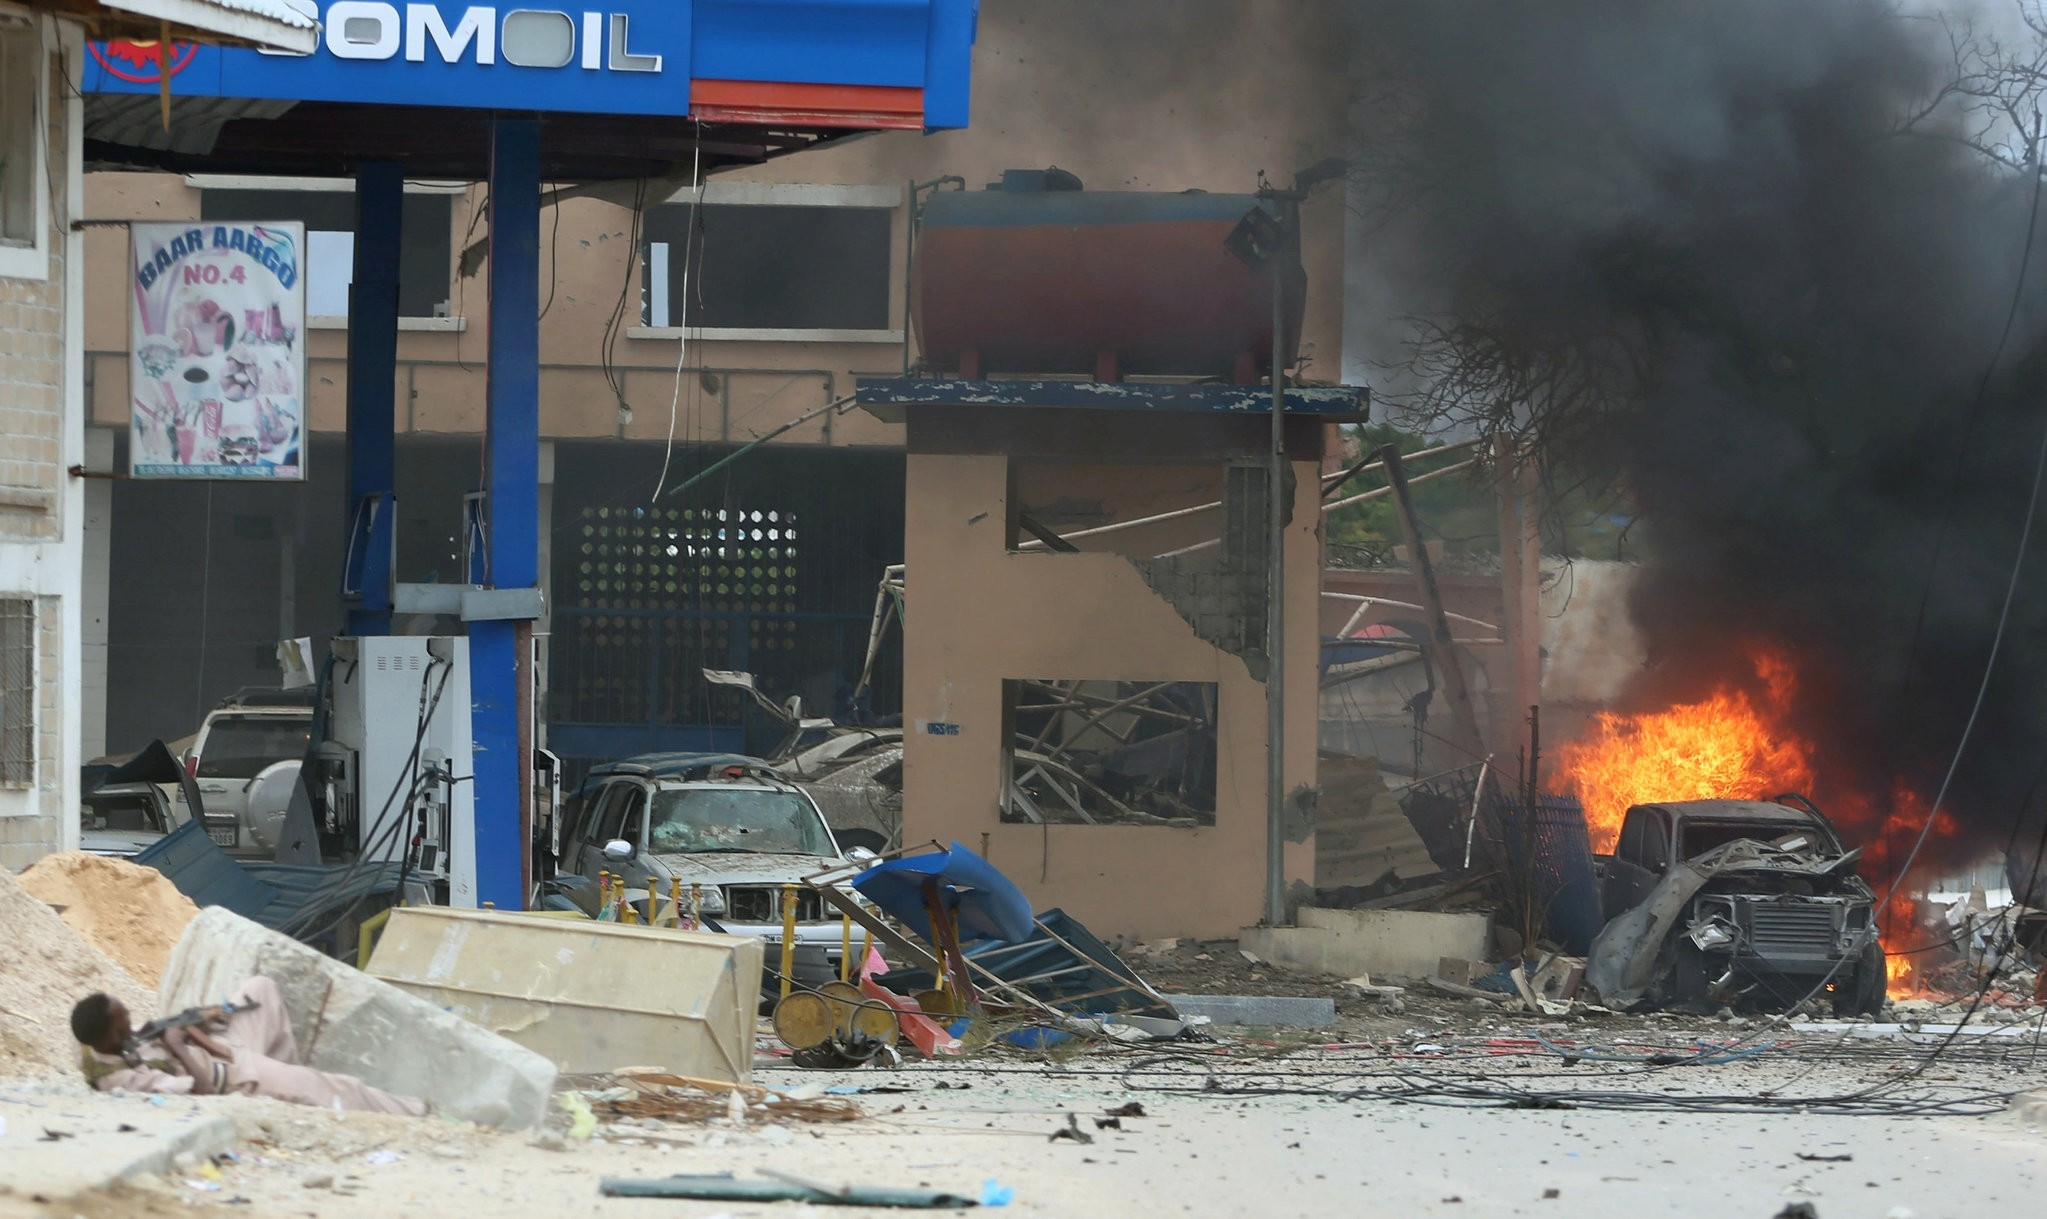 Somali government soldier holds his position during gunfire after a suicide bomb attack outside Nasahablood hotel in Somalia's capital Mogadishu, June 25, 2016. (REUTERS Photo)